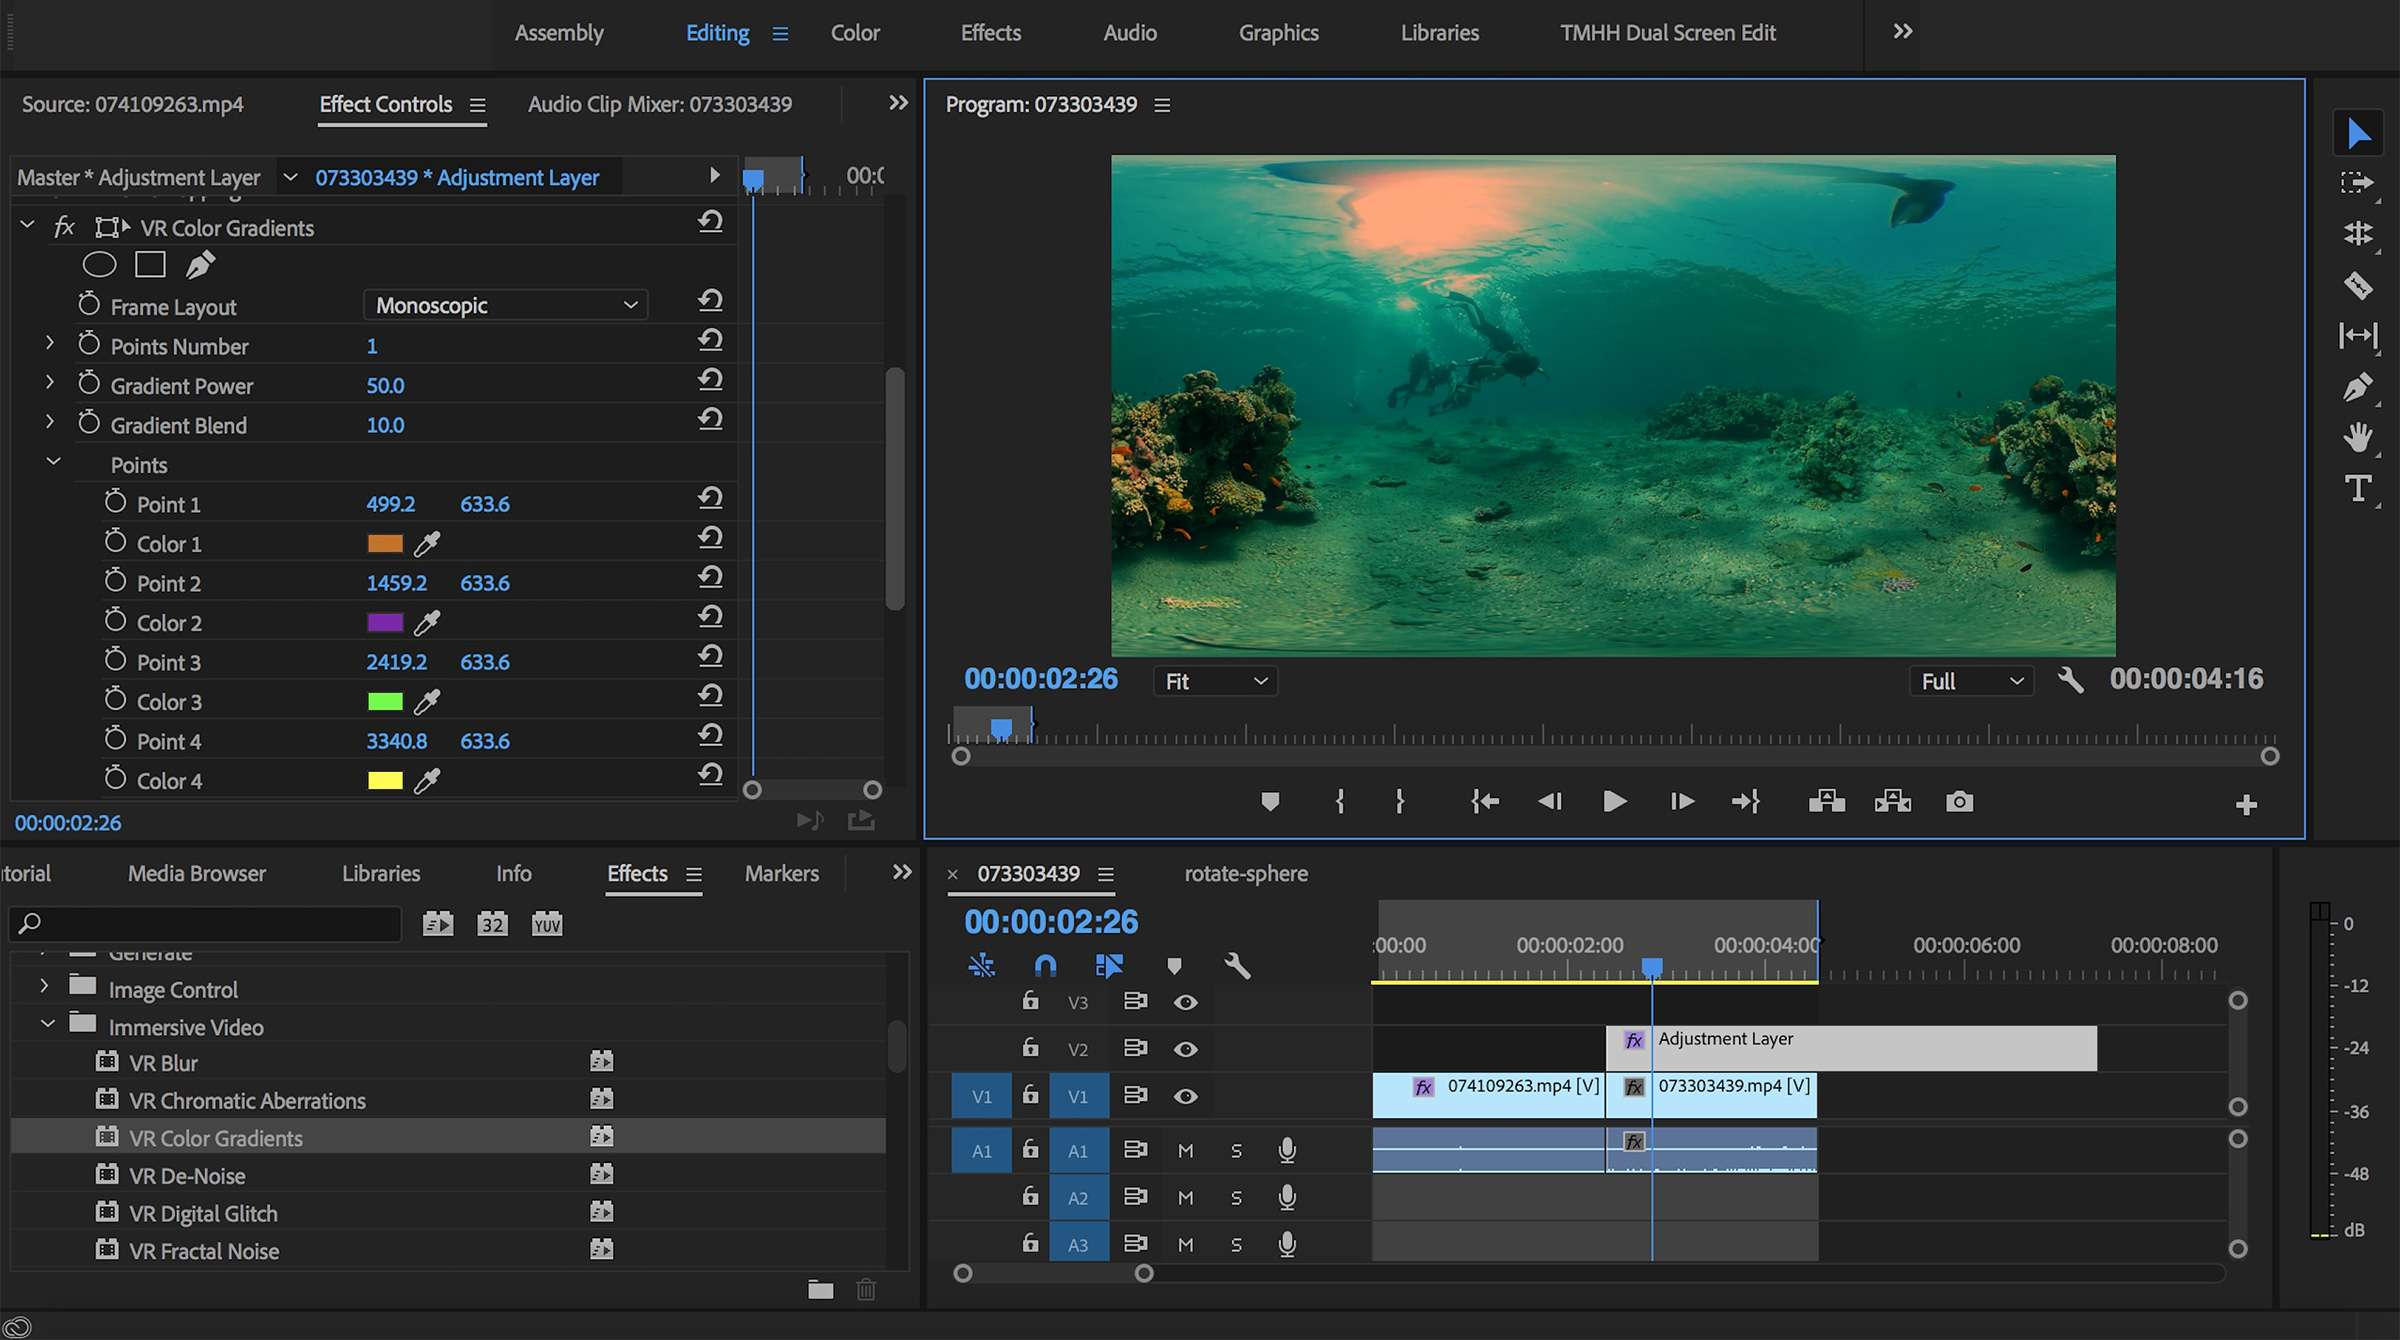 New Immersive Video Effects for 360/VR Video in Premiere Pro